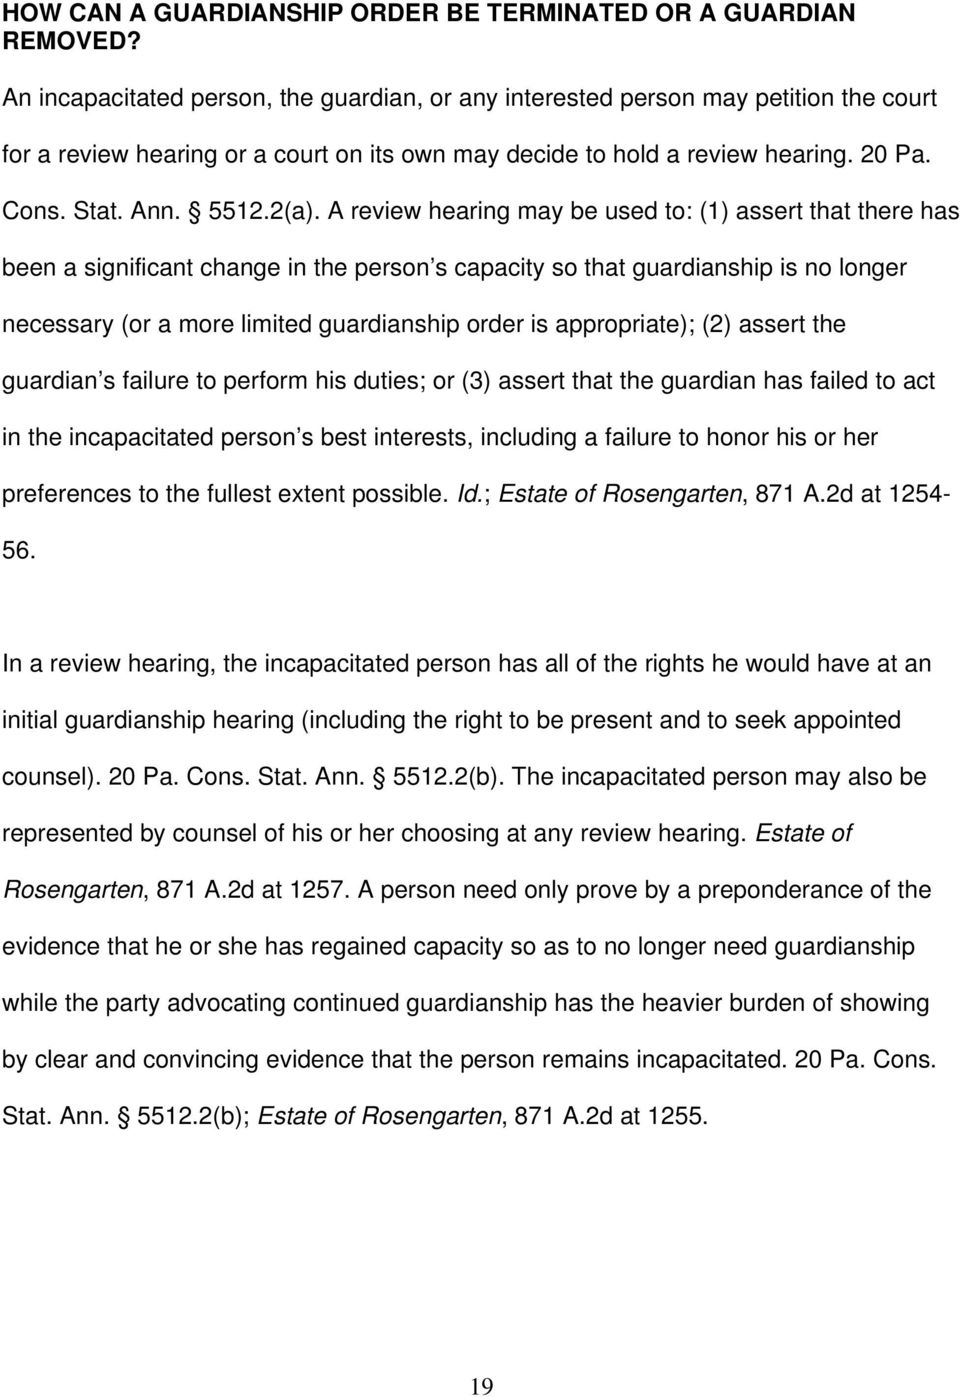 2(a). A review hearing may be used to: (1) assert that there has been a significant change in the person s capacity so that guardianship is no longer necessary (or a more limited guardianship order